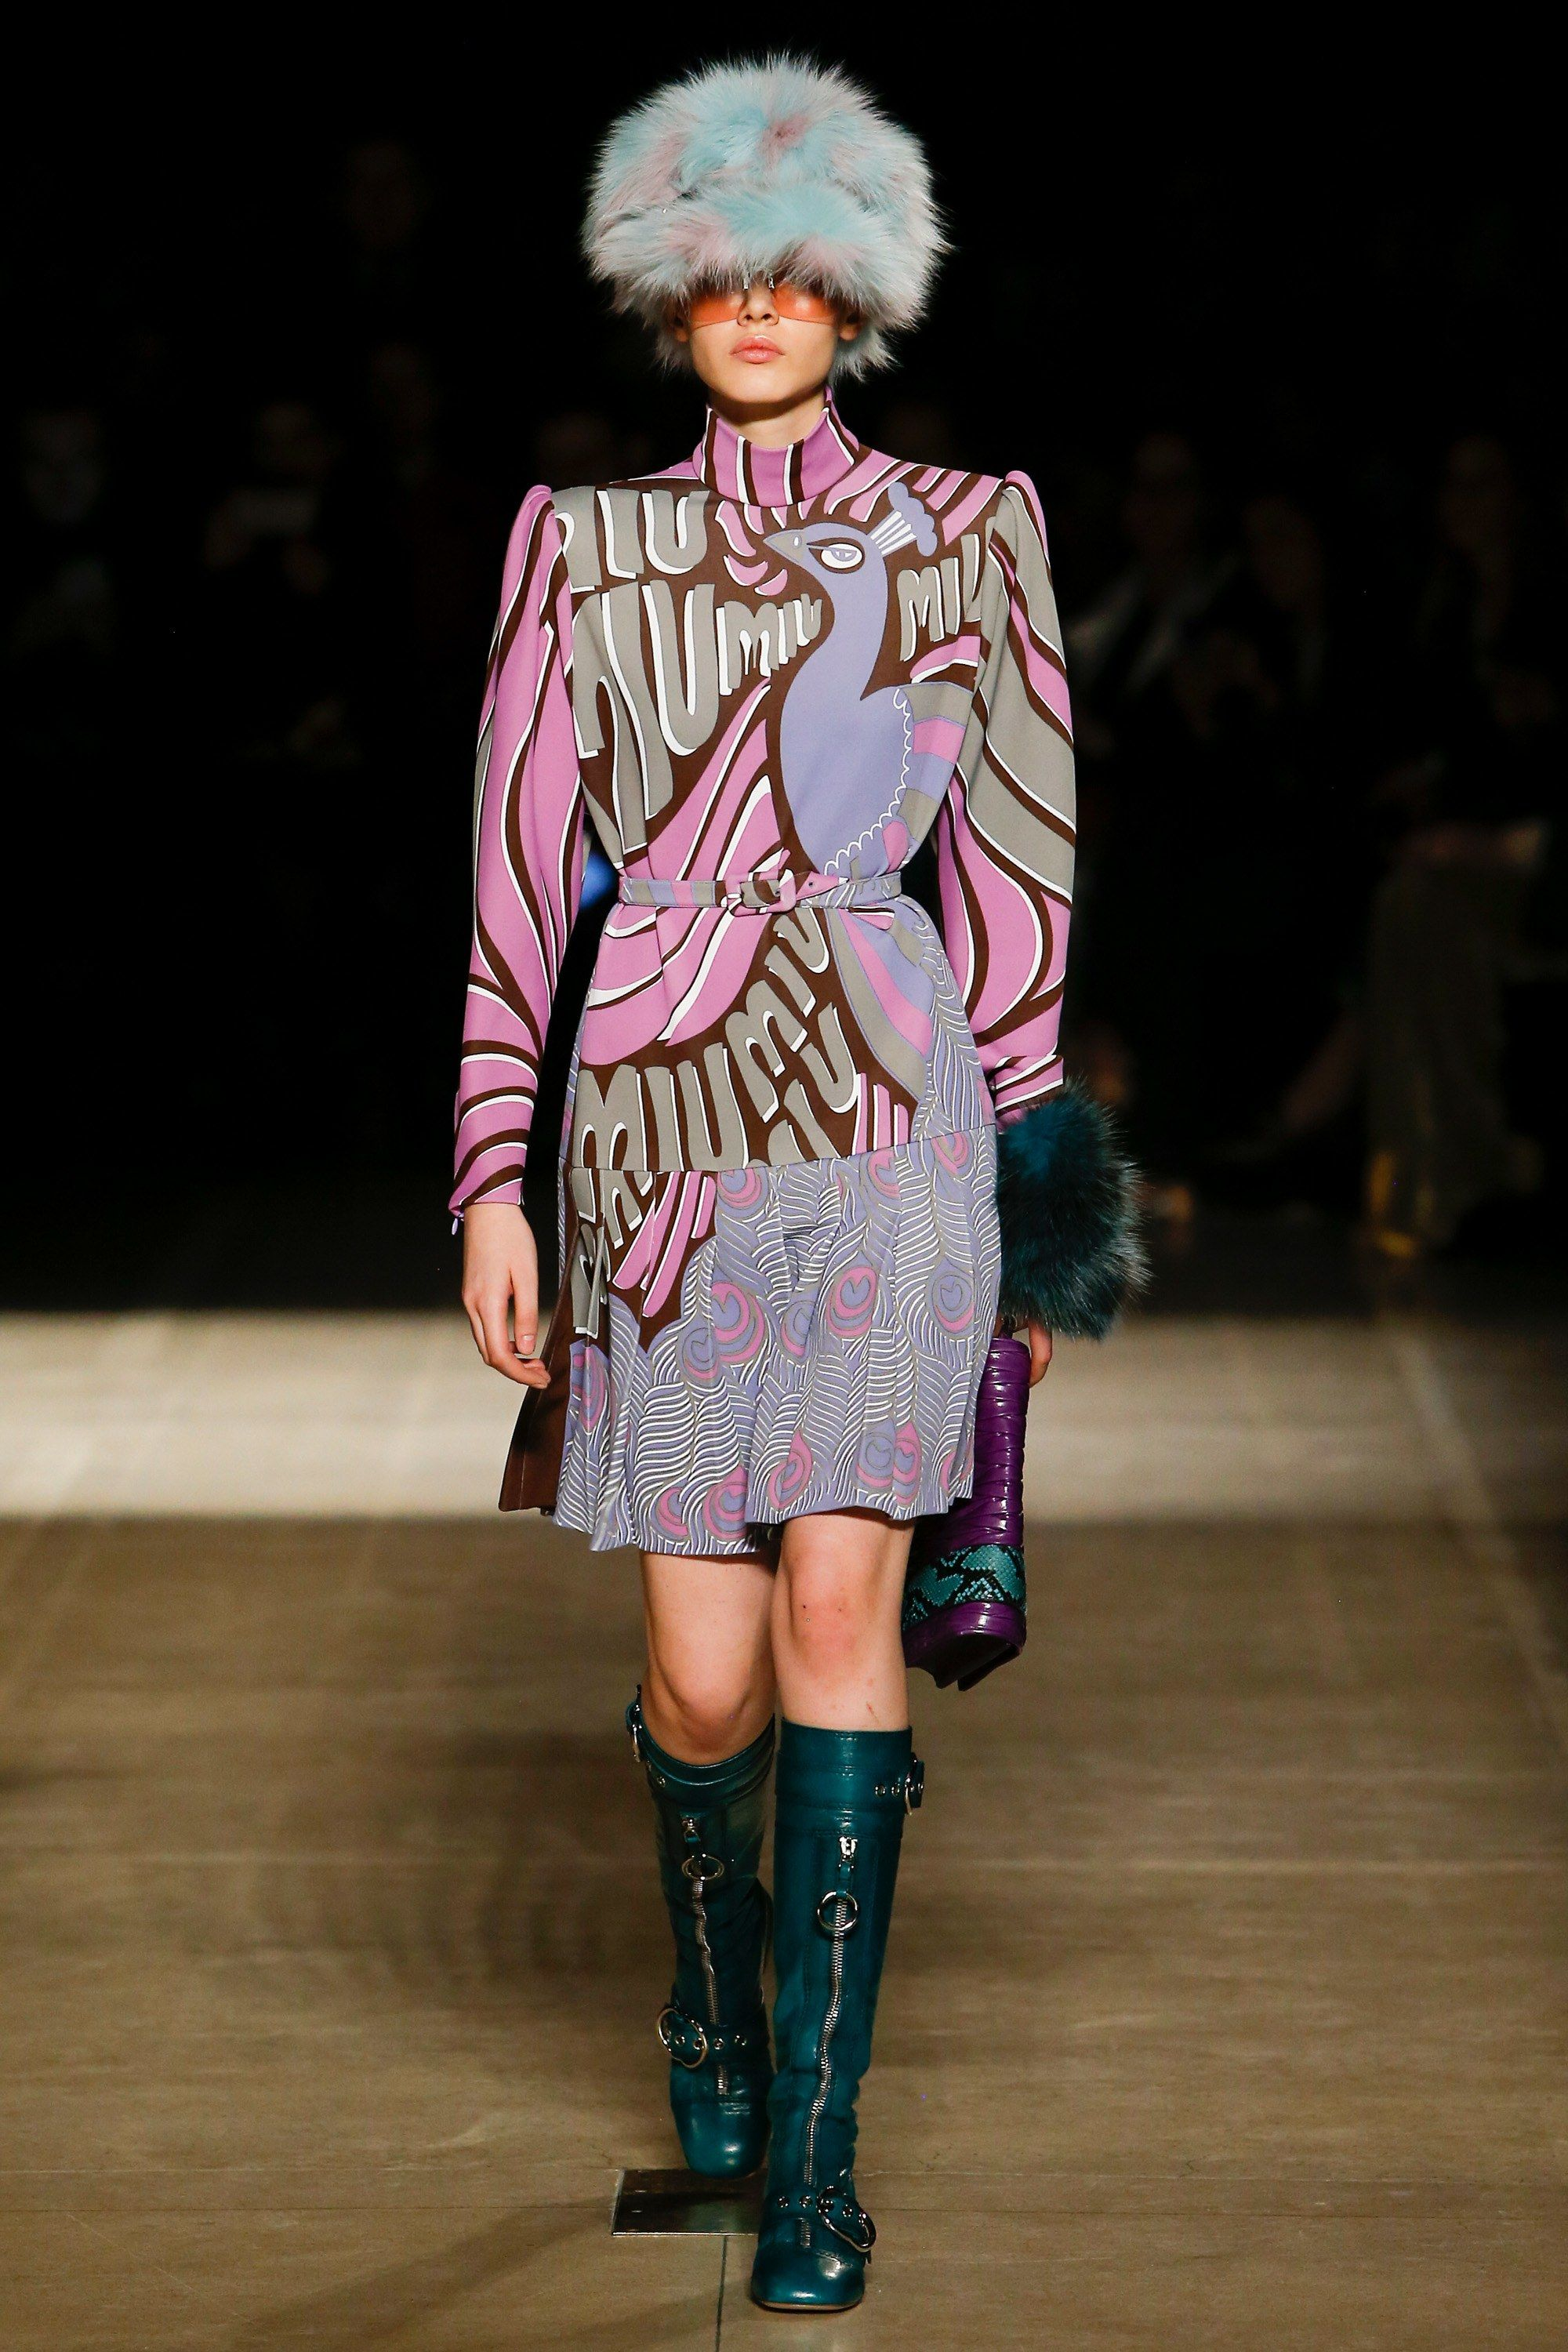 http://www.vogue.com/fashion-shows/fall-2017-ready-to-wear/miu-miu/slideshow/collection